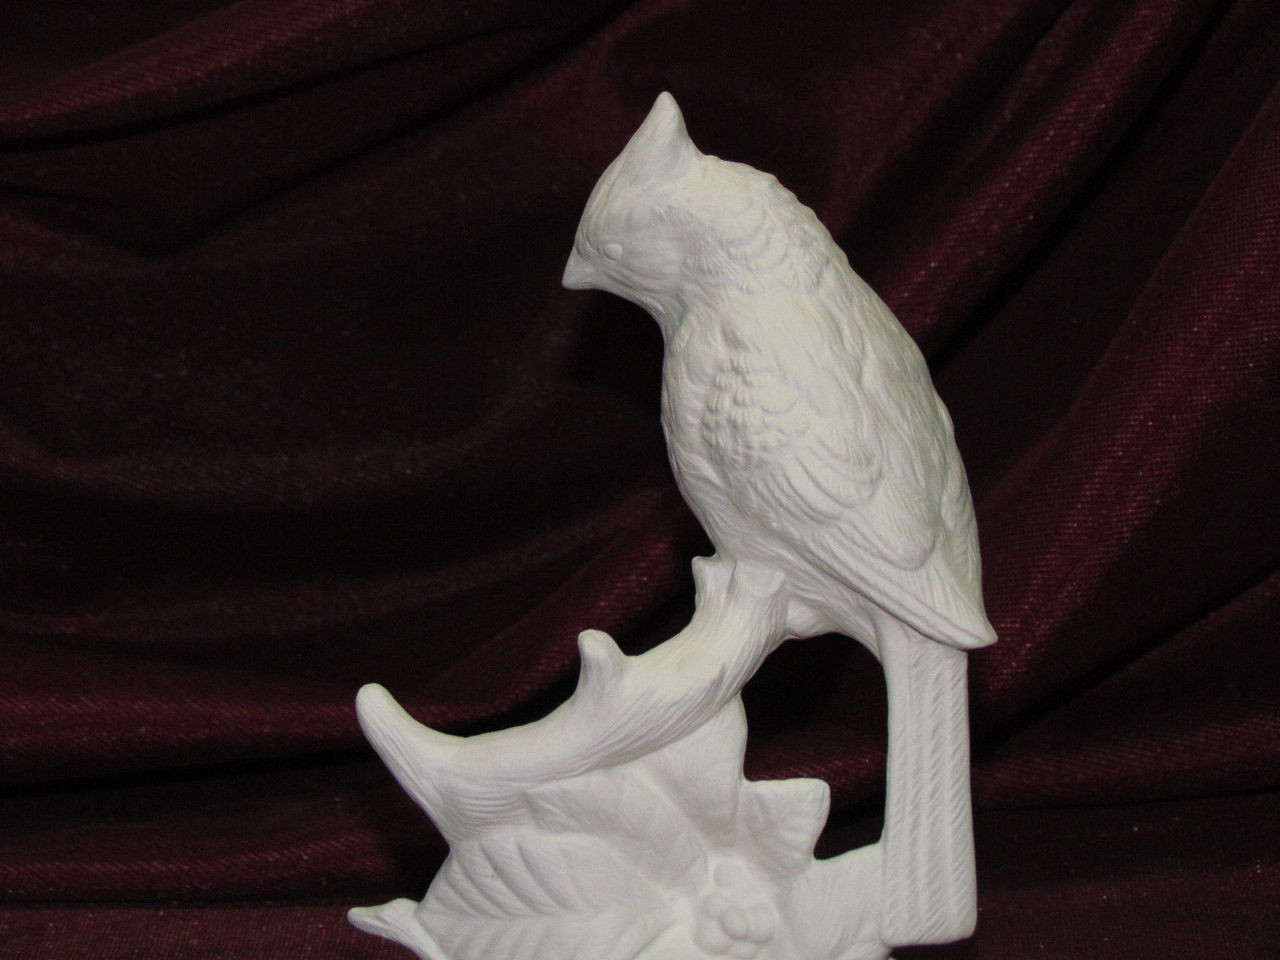 Hunting bird Unpainted Ceramic Quail Bird 6 Tall Ready to paint Ceramics Art Project Unfinished Bisque Home Decor Autumn Quail